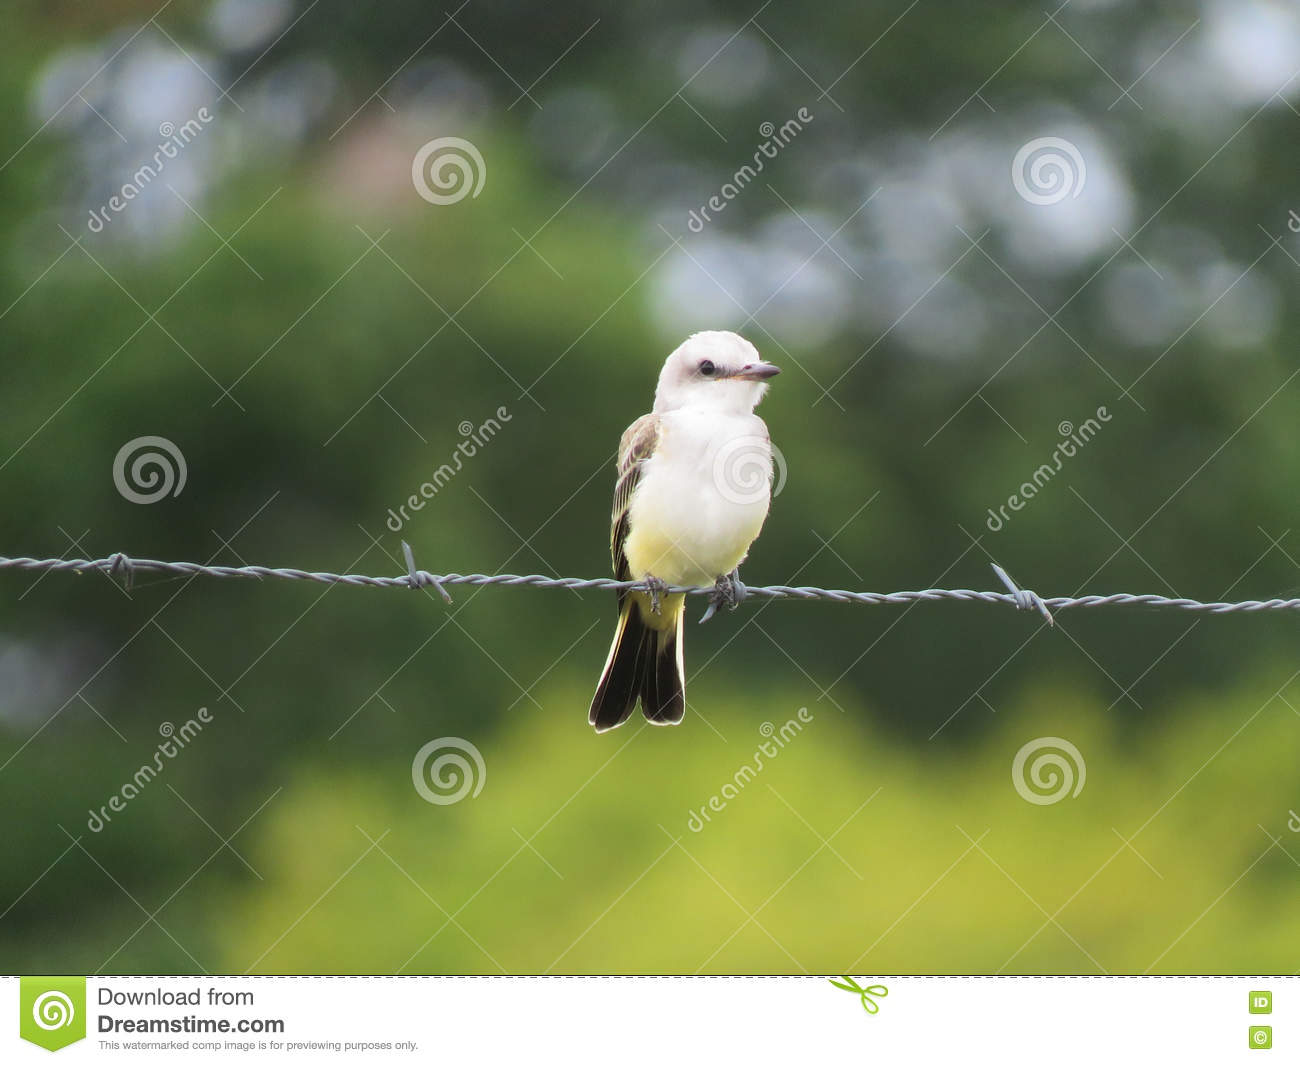 Scissor tail flycatcher, baby or young